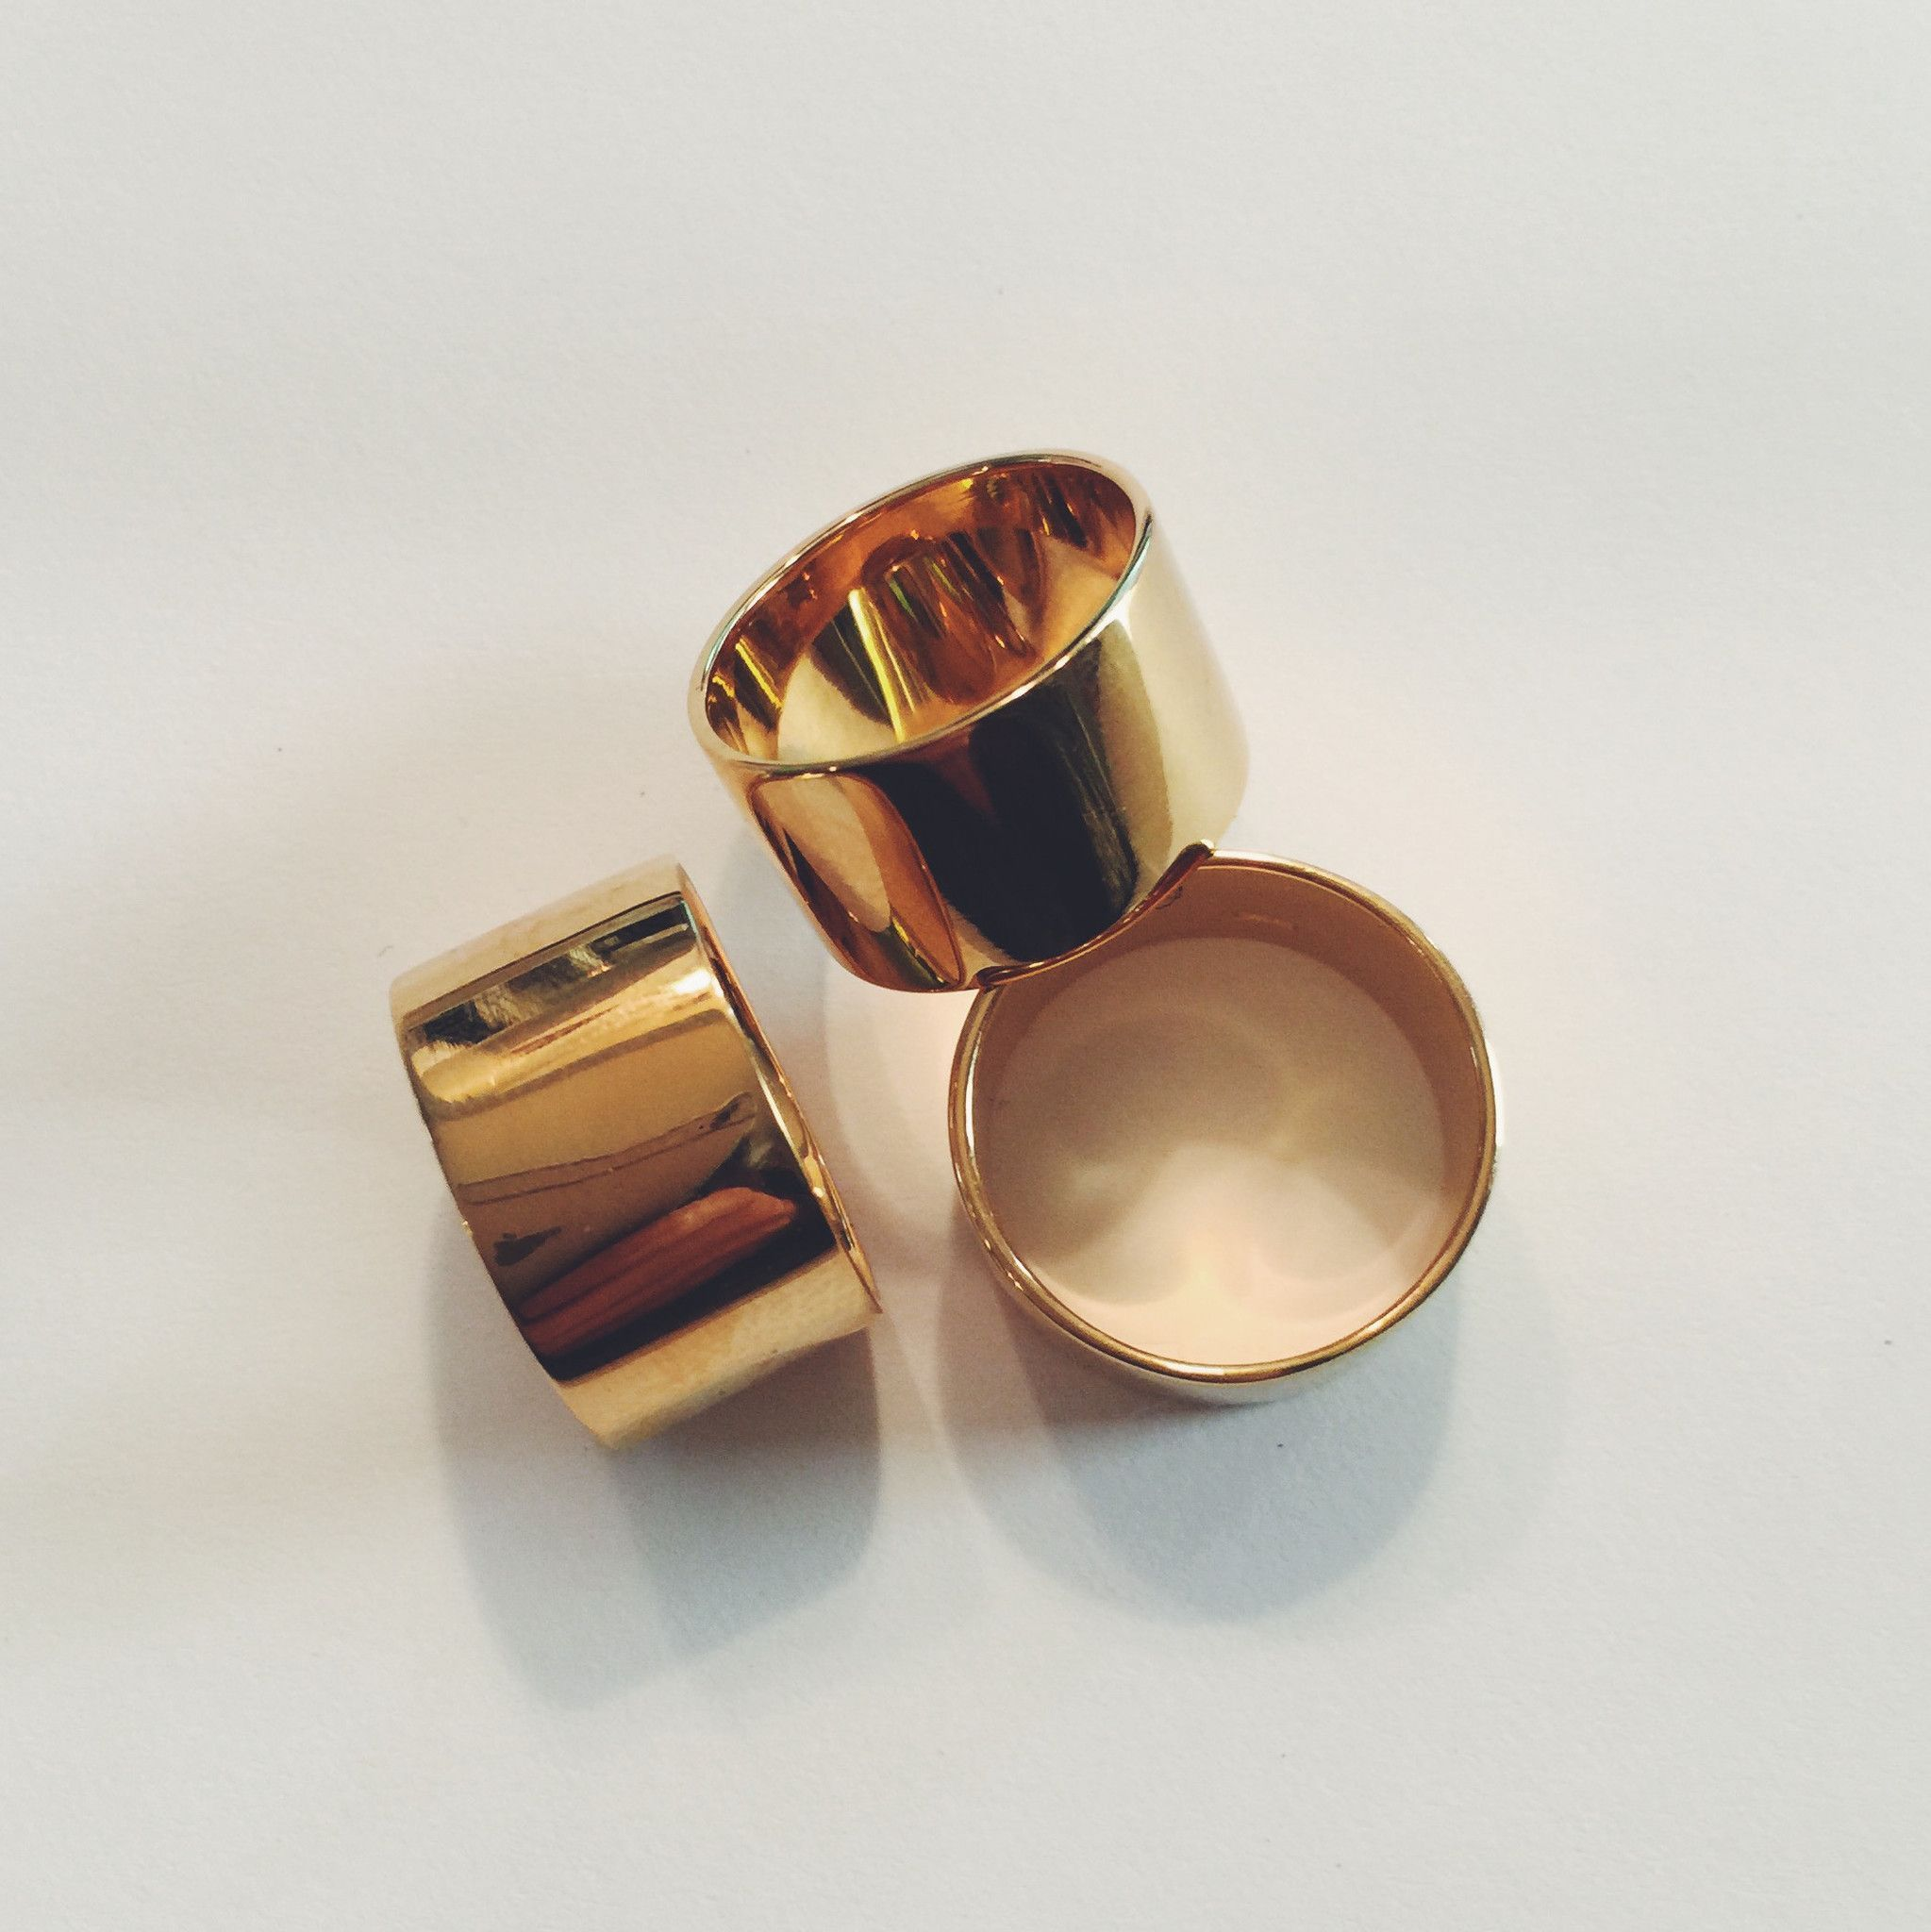 pin and ring hendecagon gold bands